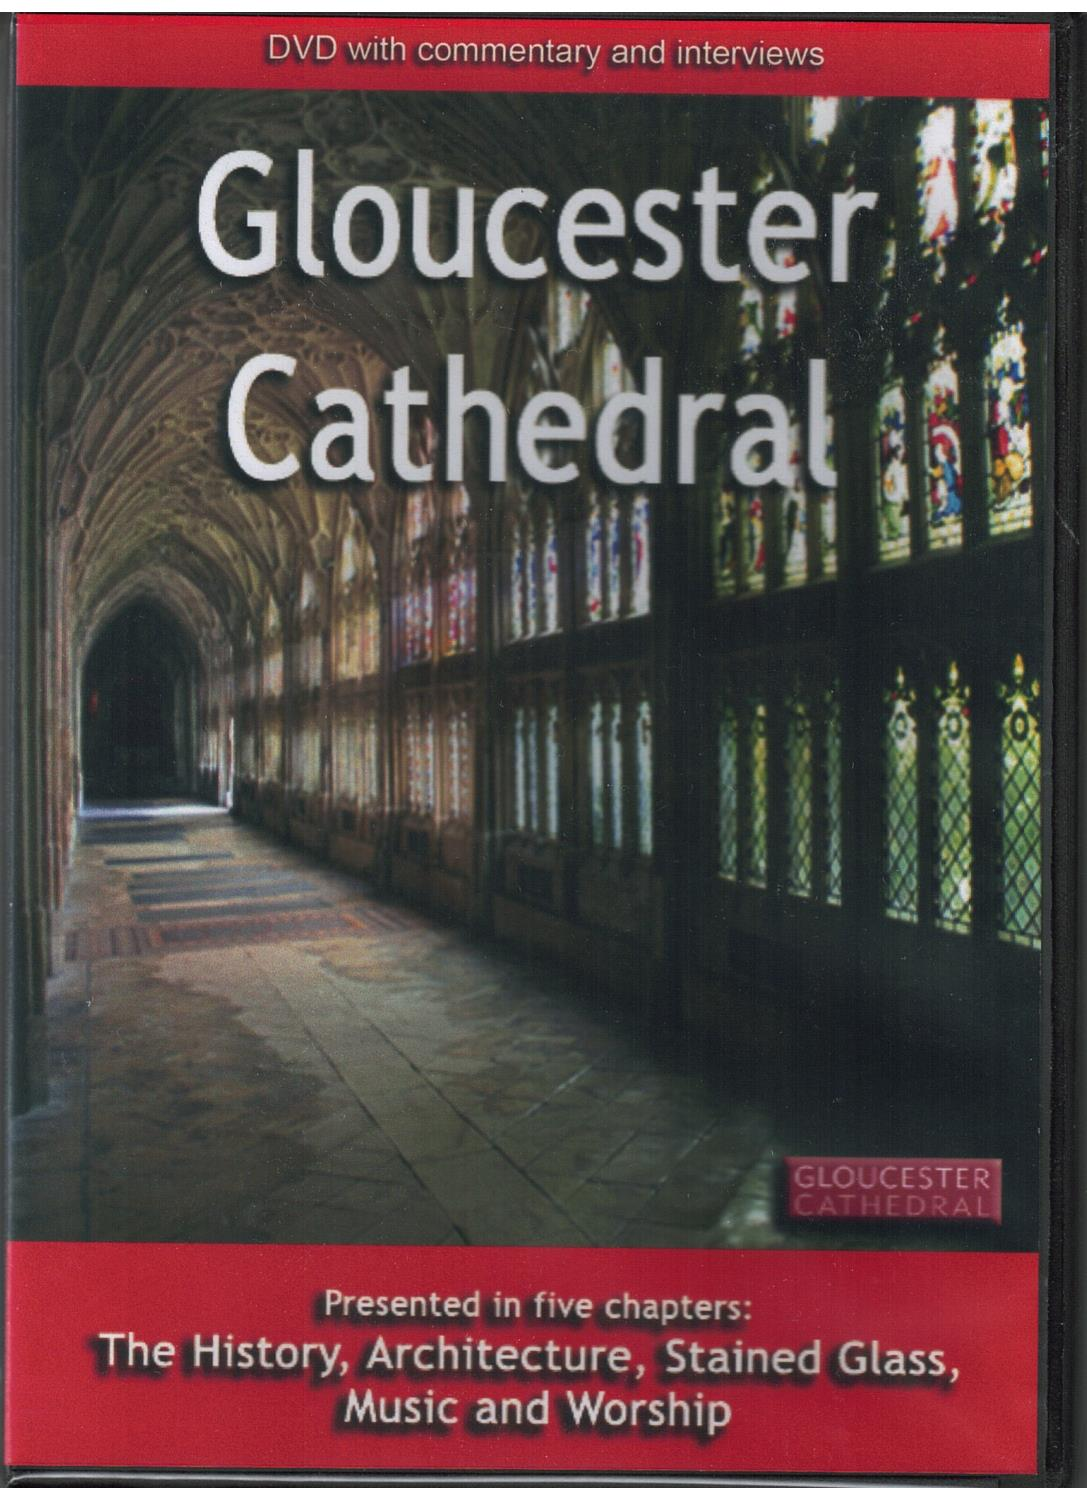 Image for DVD Gloucester Cathedral